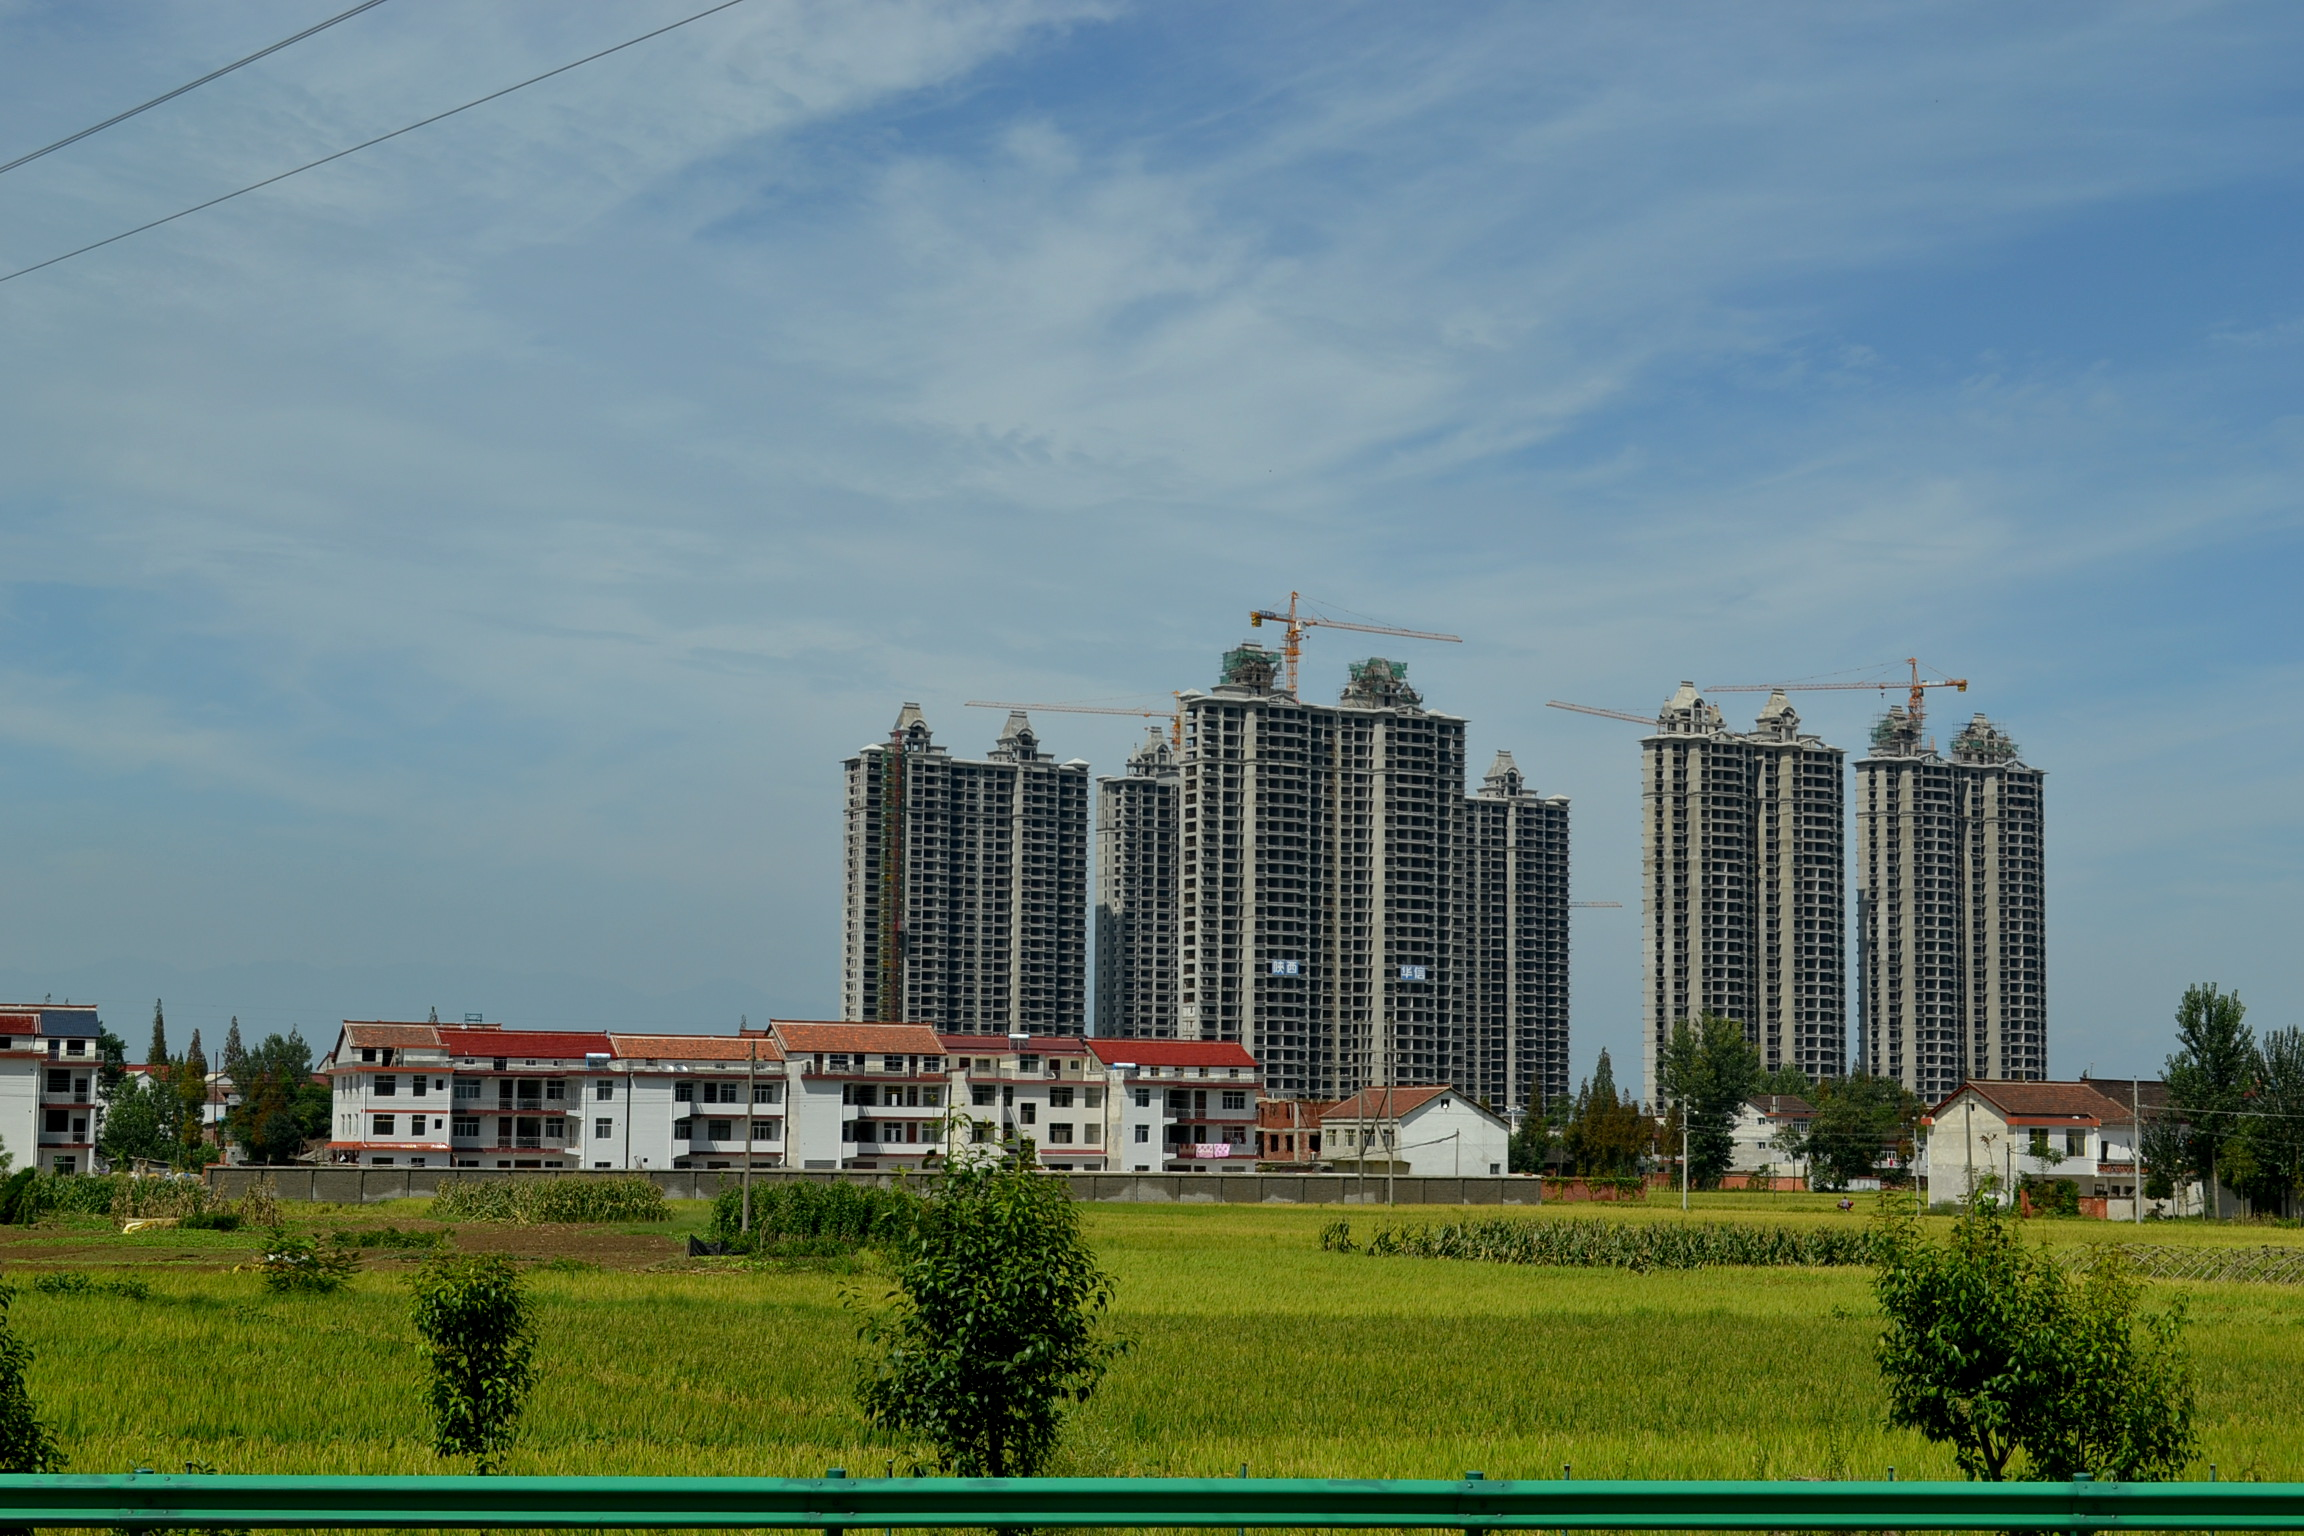 High rises on the edge of Hanzhong, a medium-sized regional city in Sha'anxi province